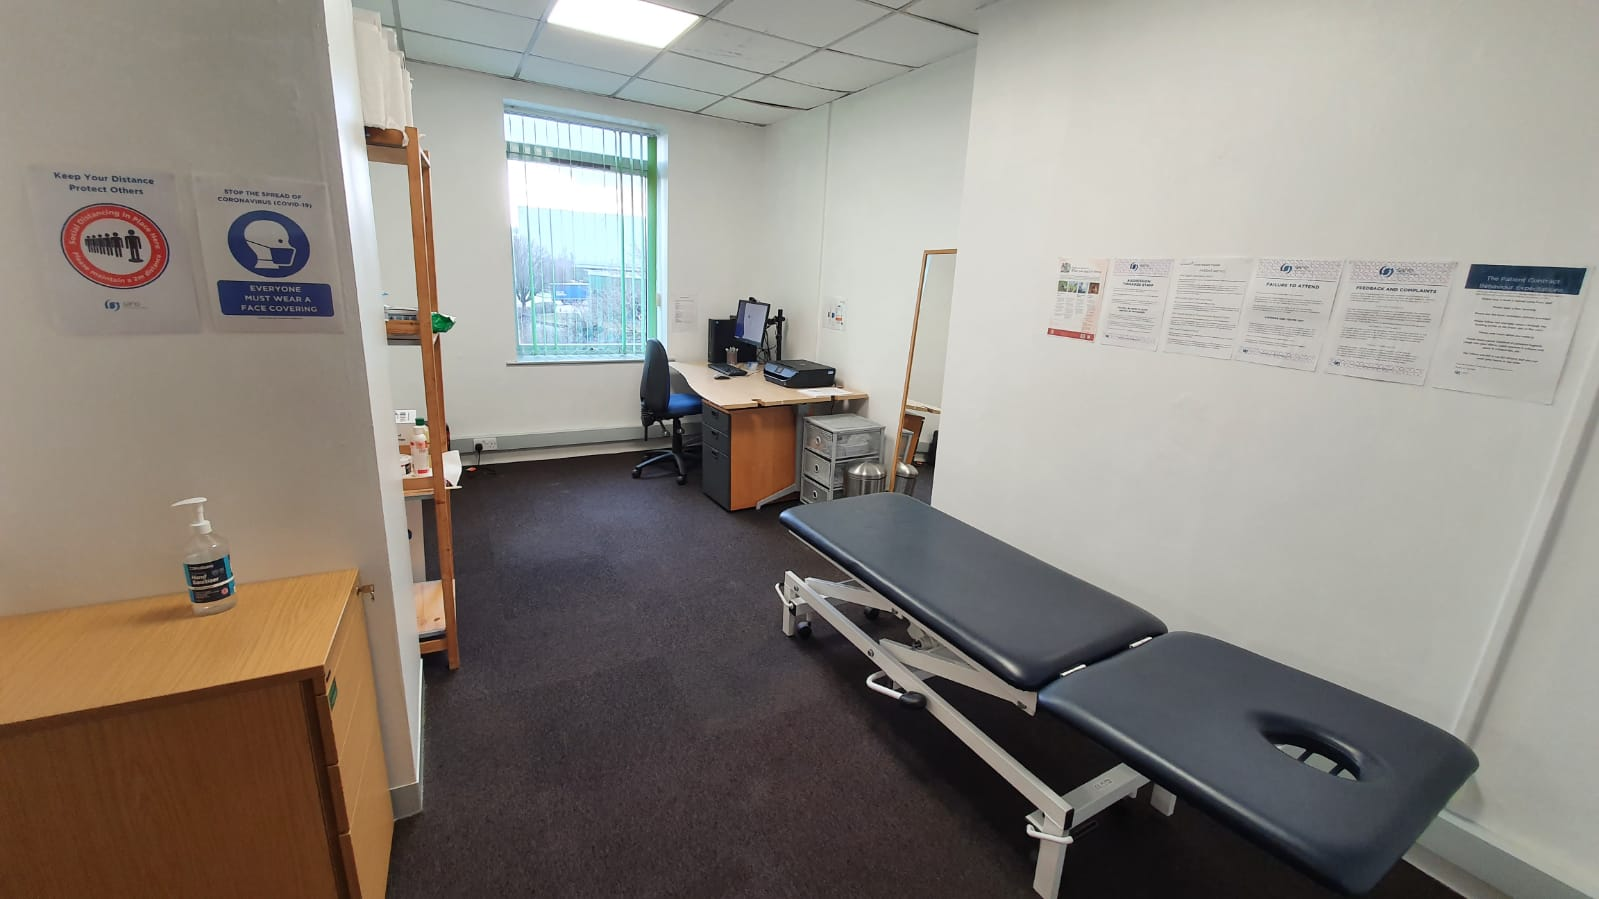 An image of the treatment room